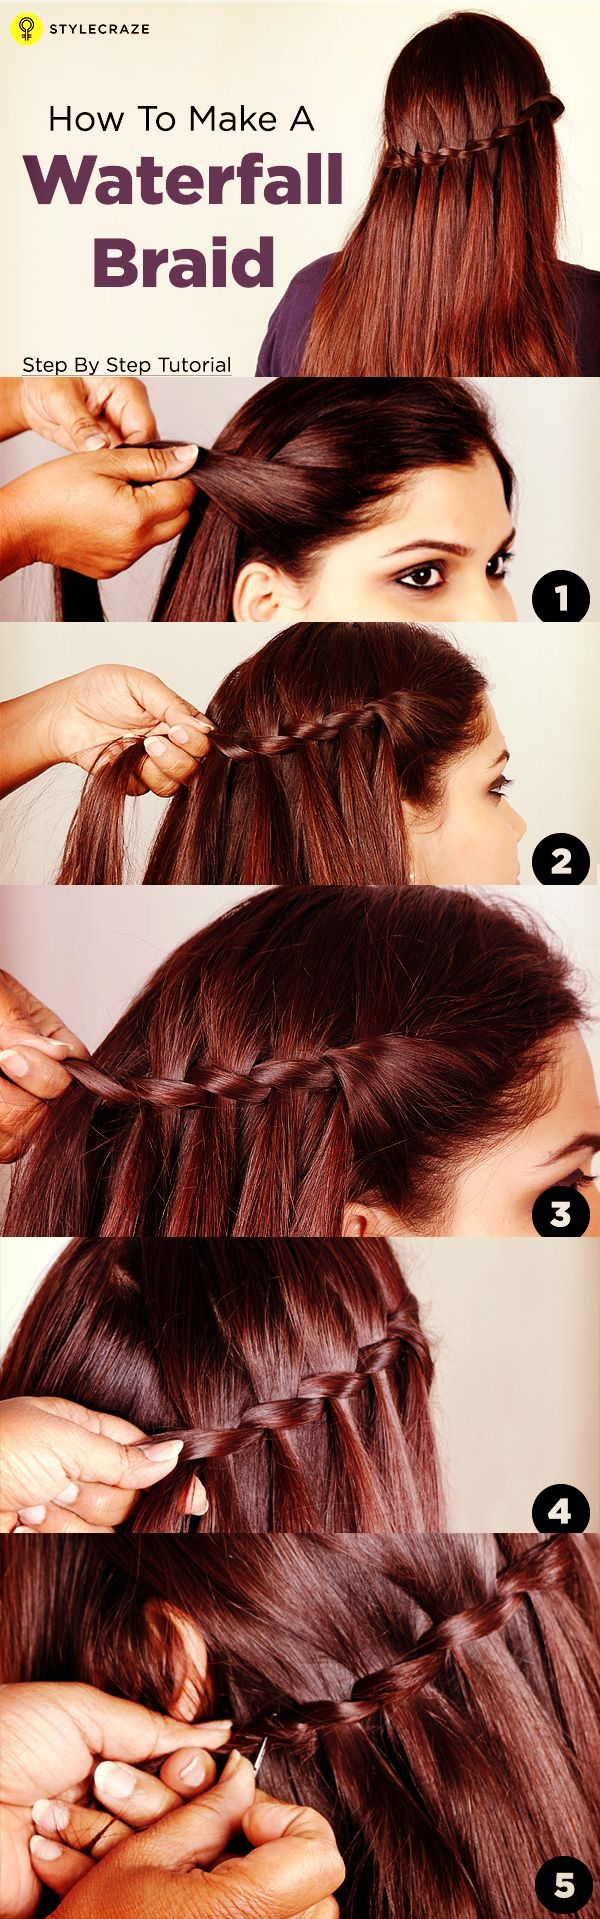 The waterfall braids is one of the most gorgeous hairstyles ever. After stumbling upon this waterfall braids on Pinterest a few days ago,  I decided to recreate this simple but trendy hairstyle. So, let's learn how to make a waterfall braids.  #braids